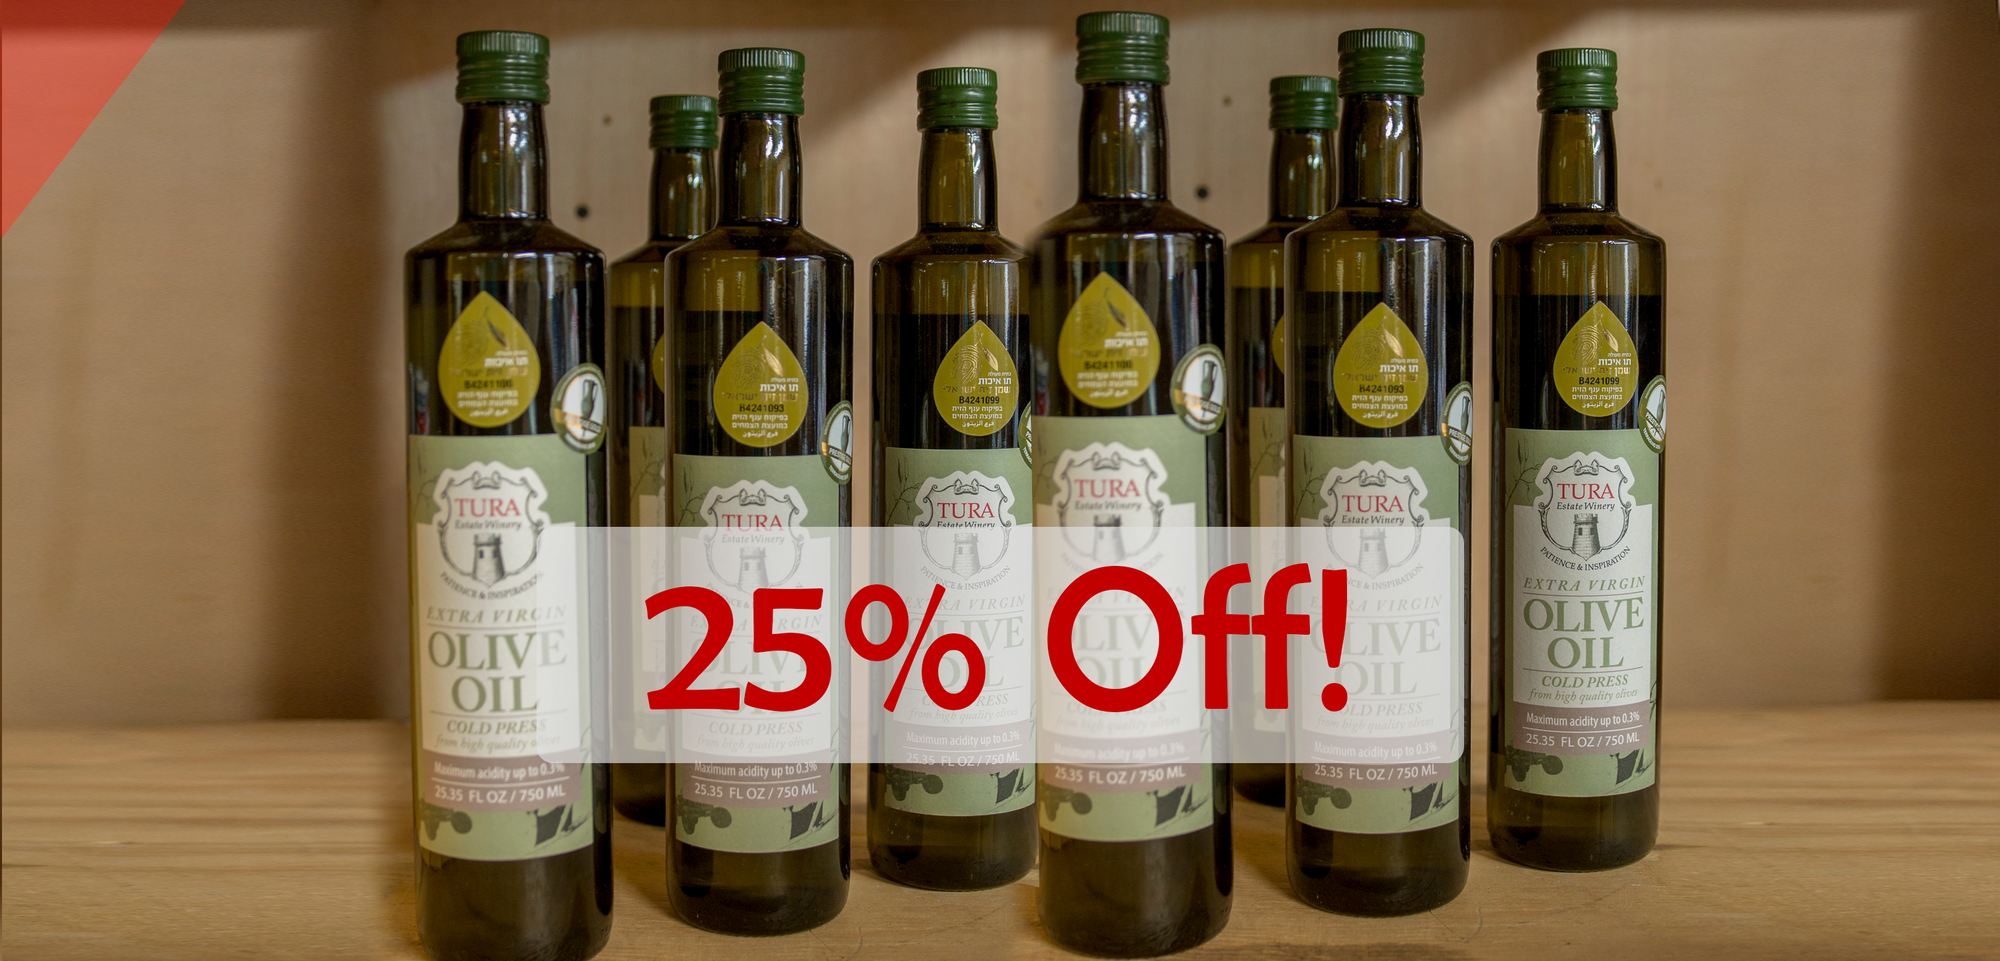 Passover Sale! Olive Oil 25% Off. Rejoice this season with products from Judea and Samaria